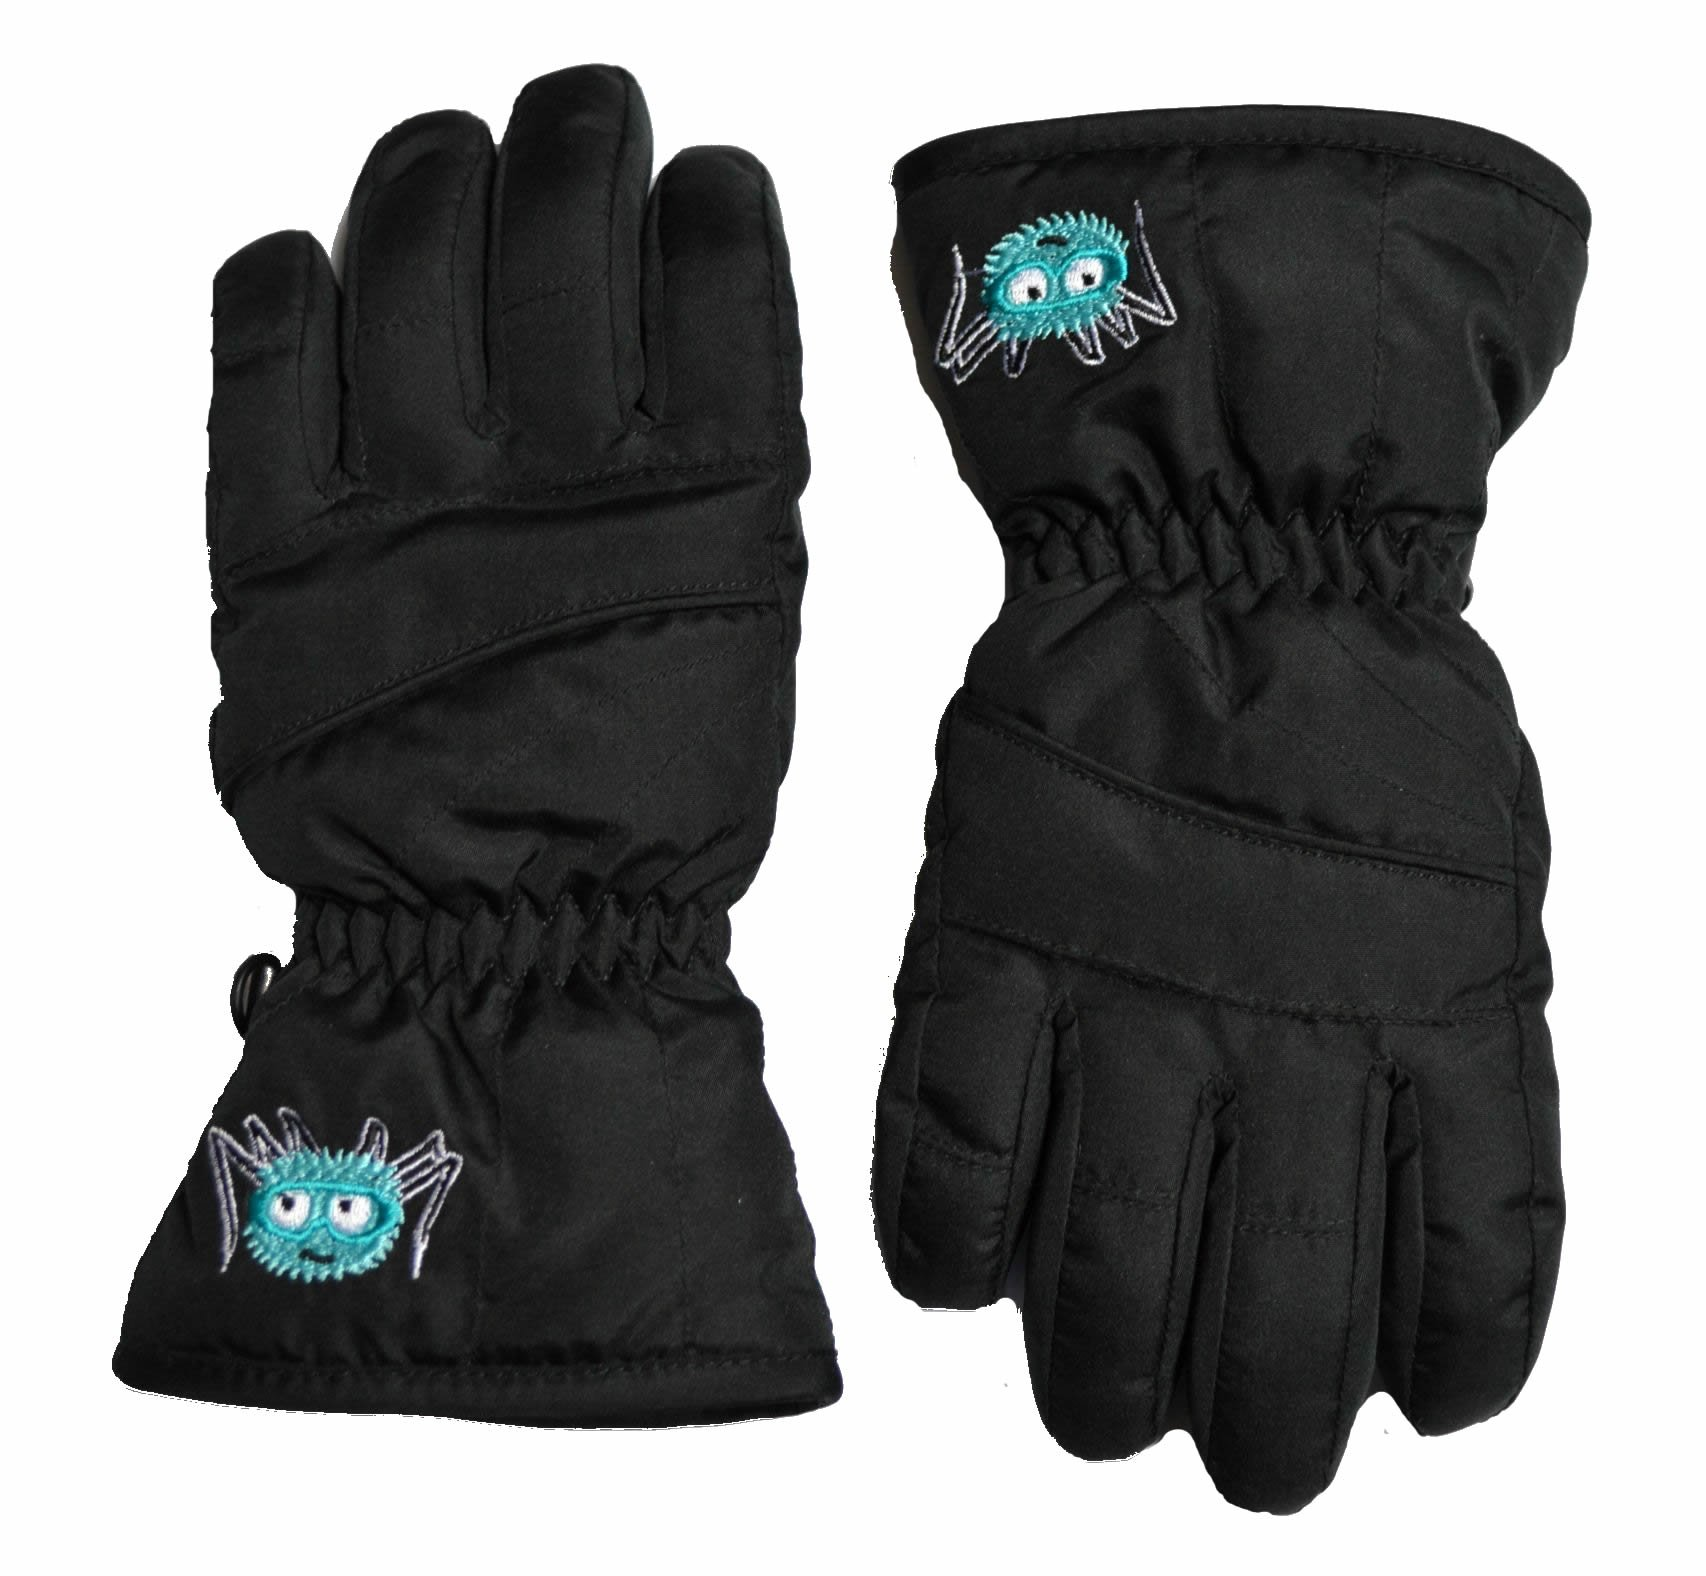 Kids Ski Gloves - Water Resistant With Warm Tricot Lining. Age 4-6 by Skiweb